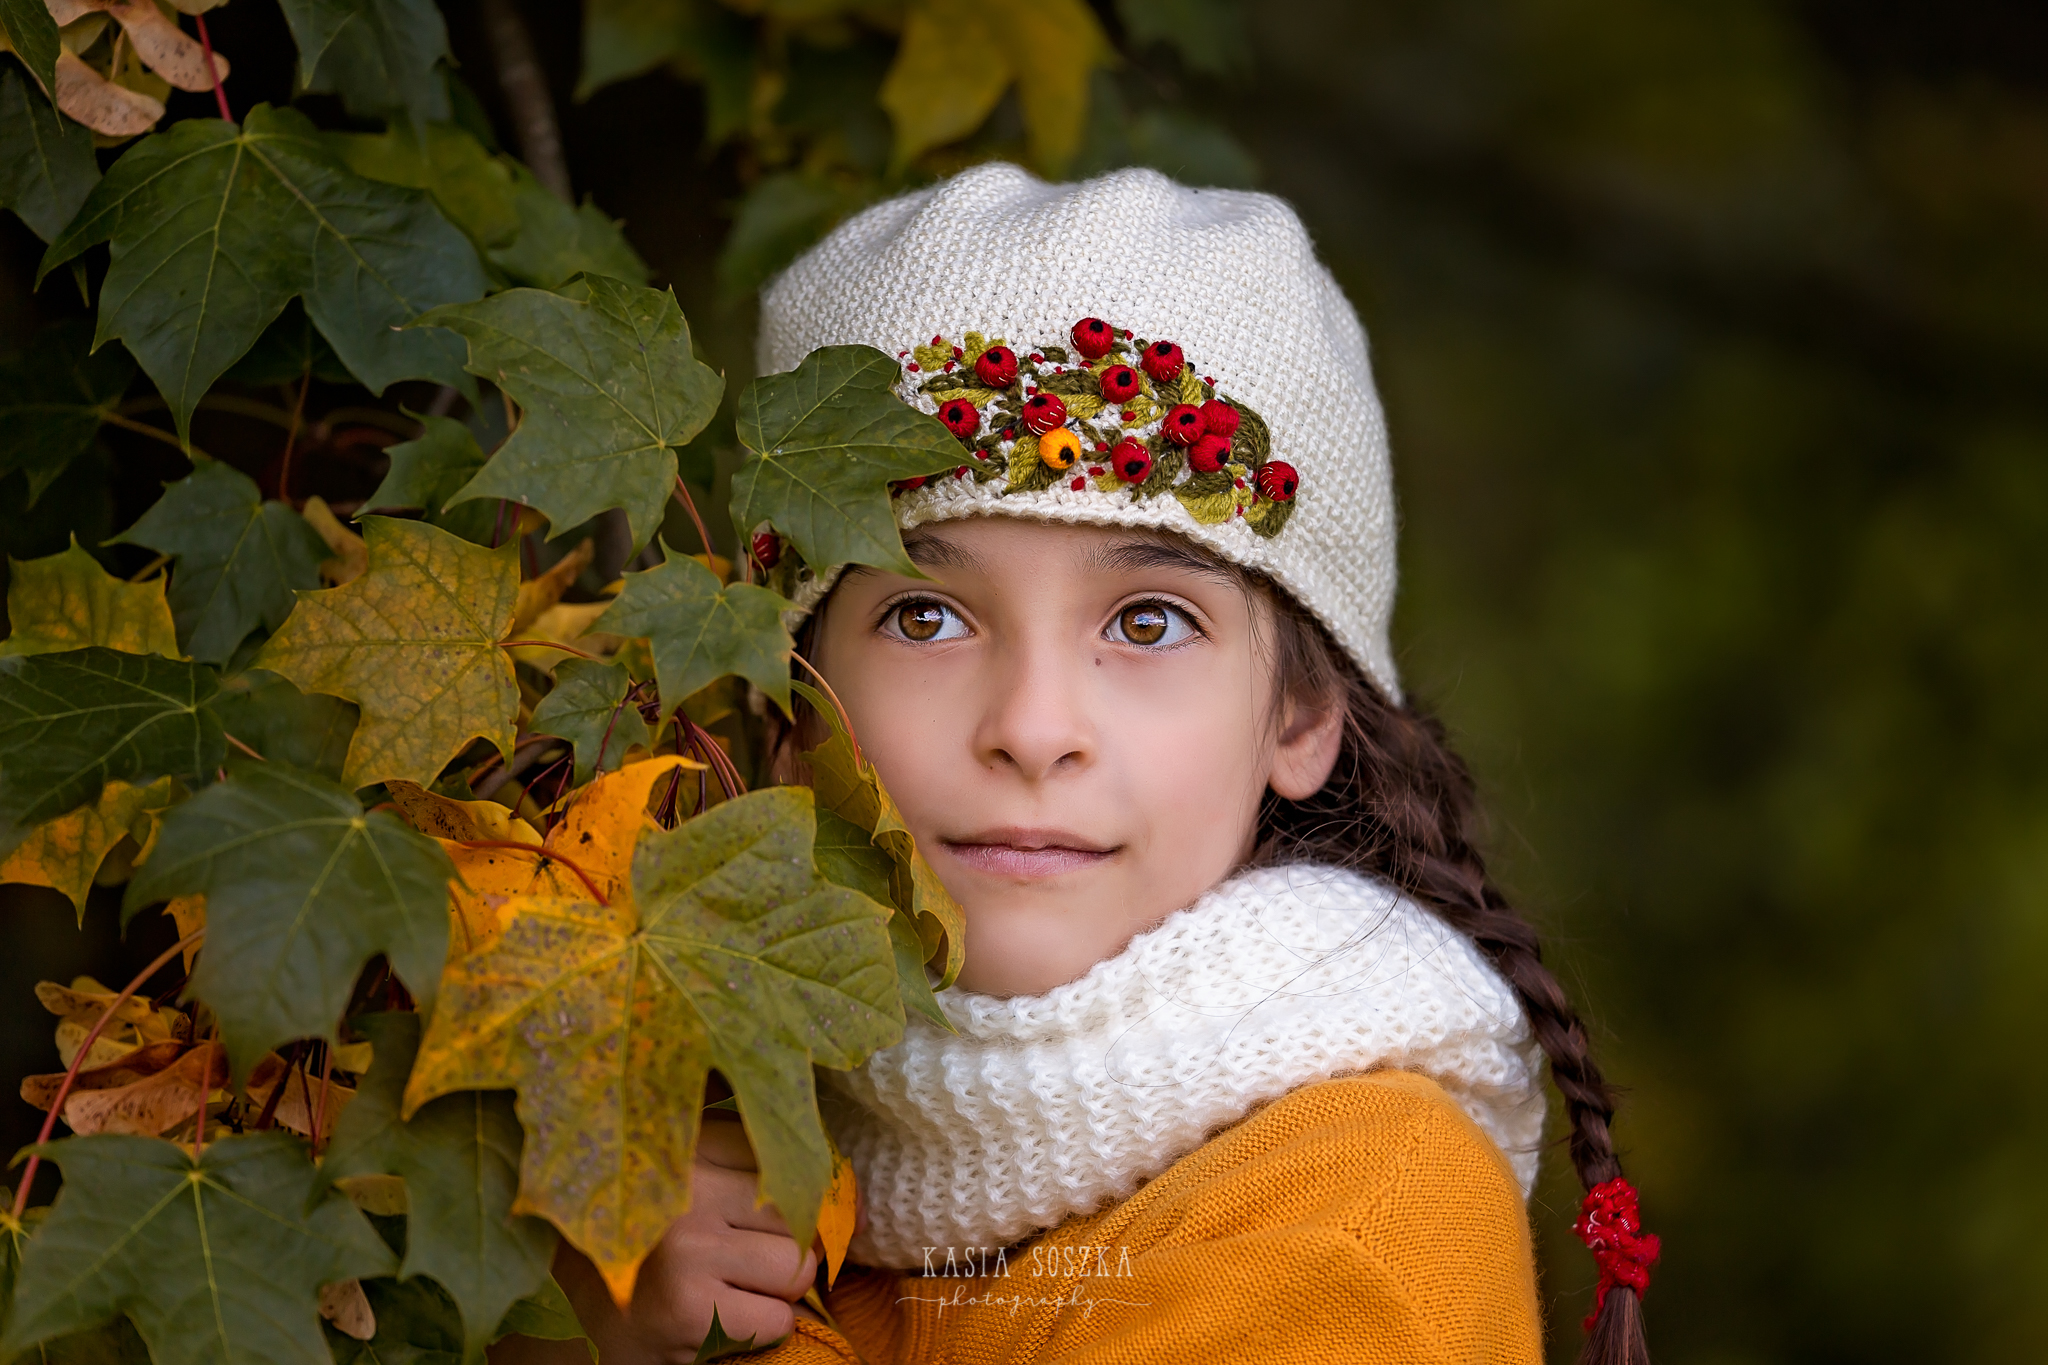 Child photography Leeds, York, Harrogate, Bradford: girl in yellow sweater and autumn leaves. Child session in Leeds, Yorkshire.